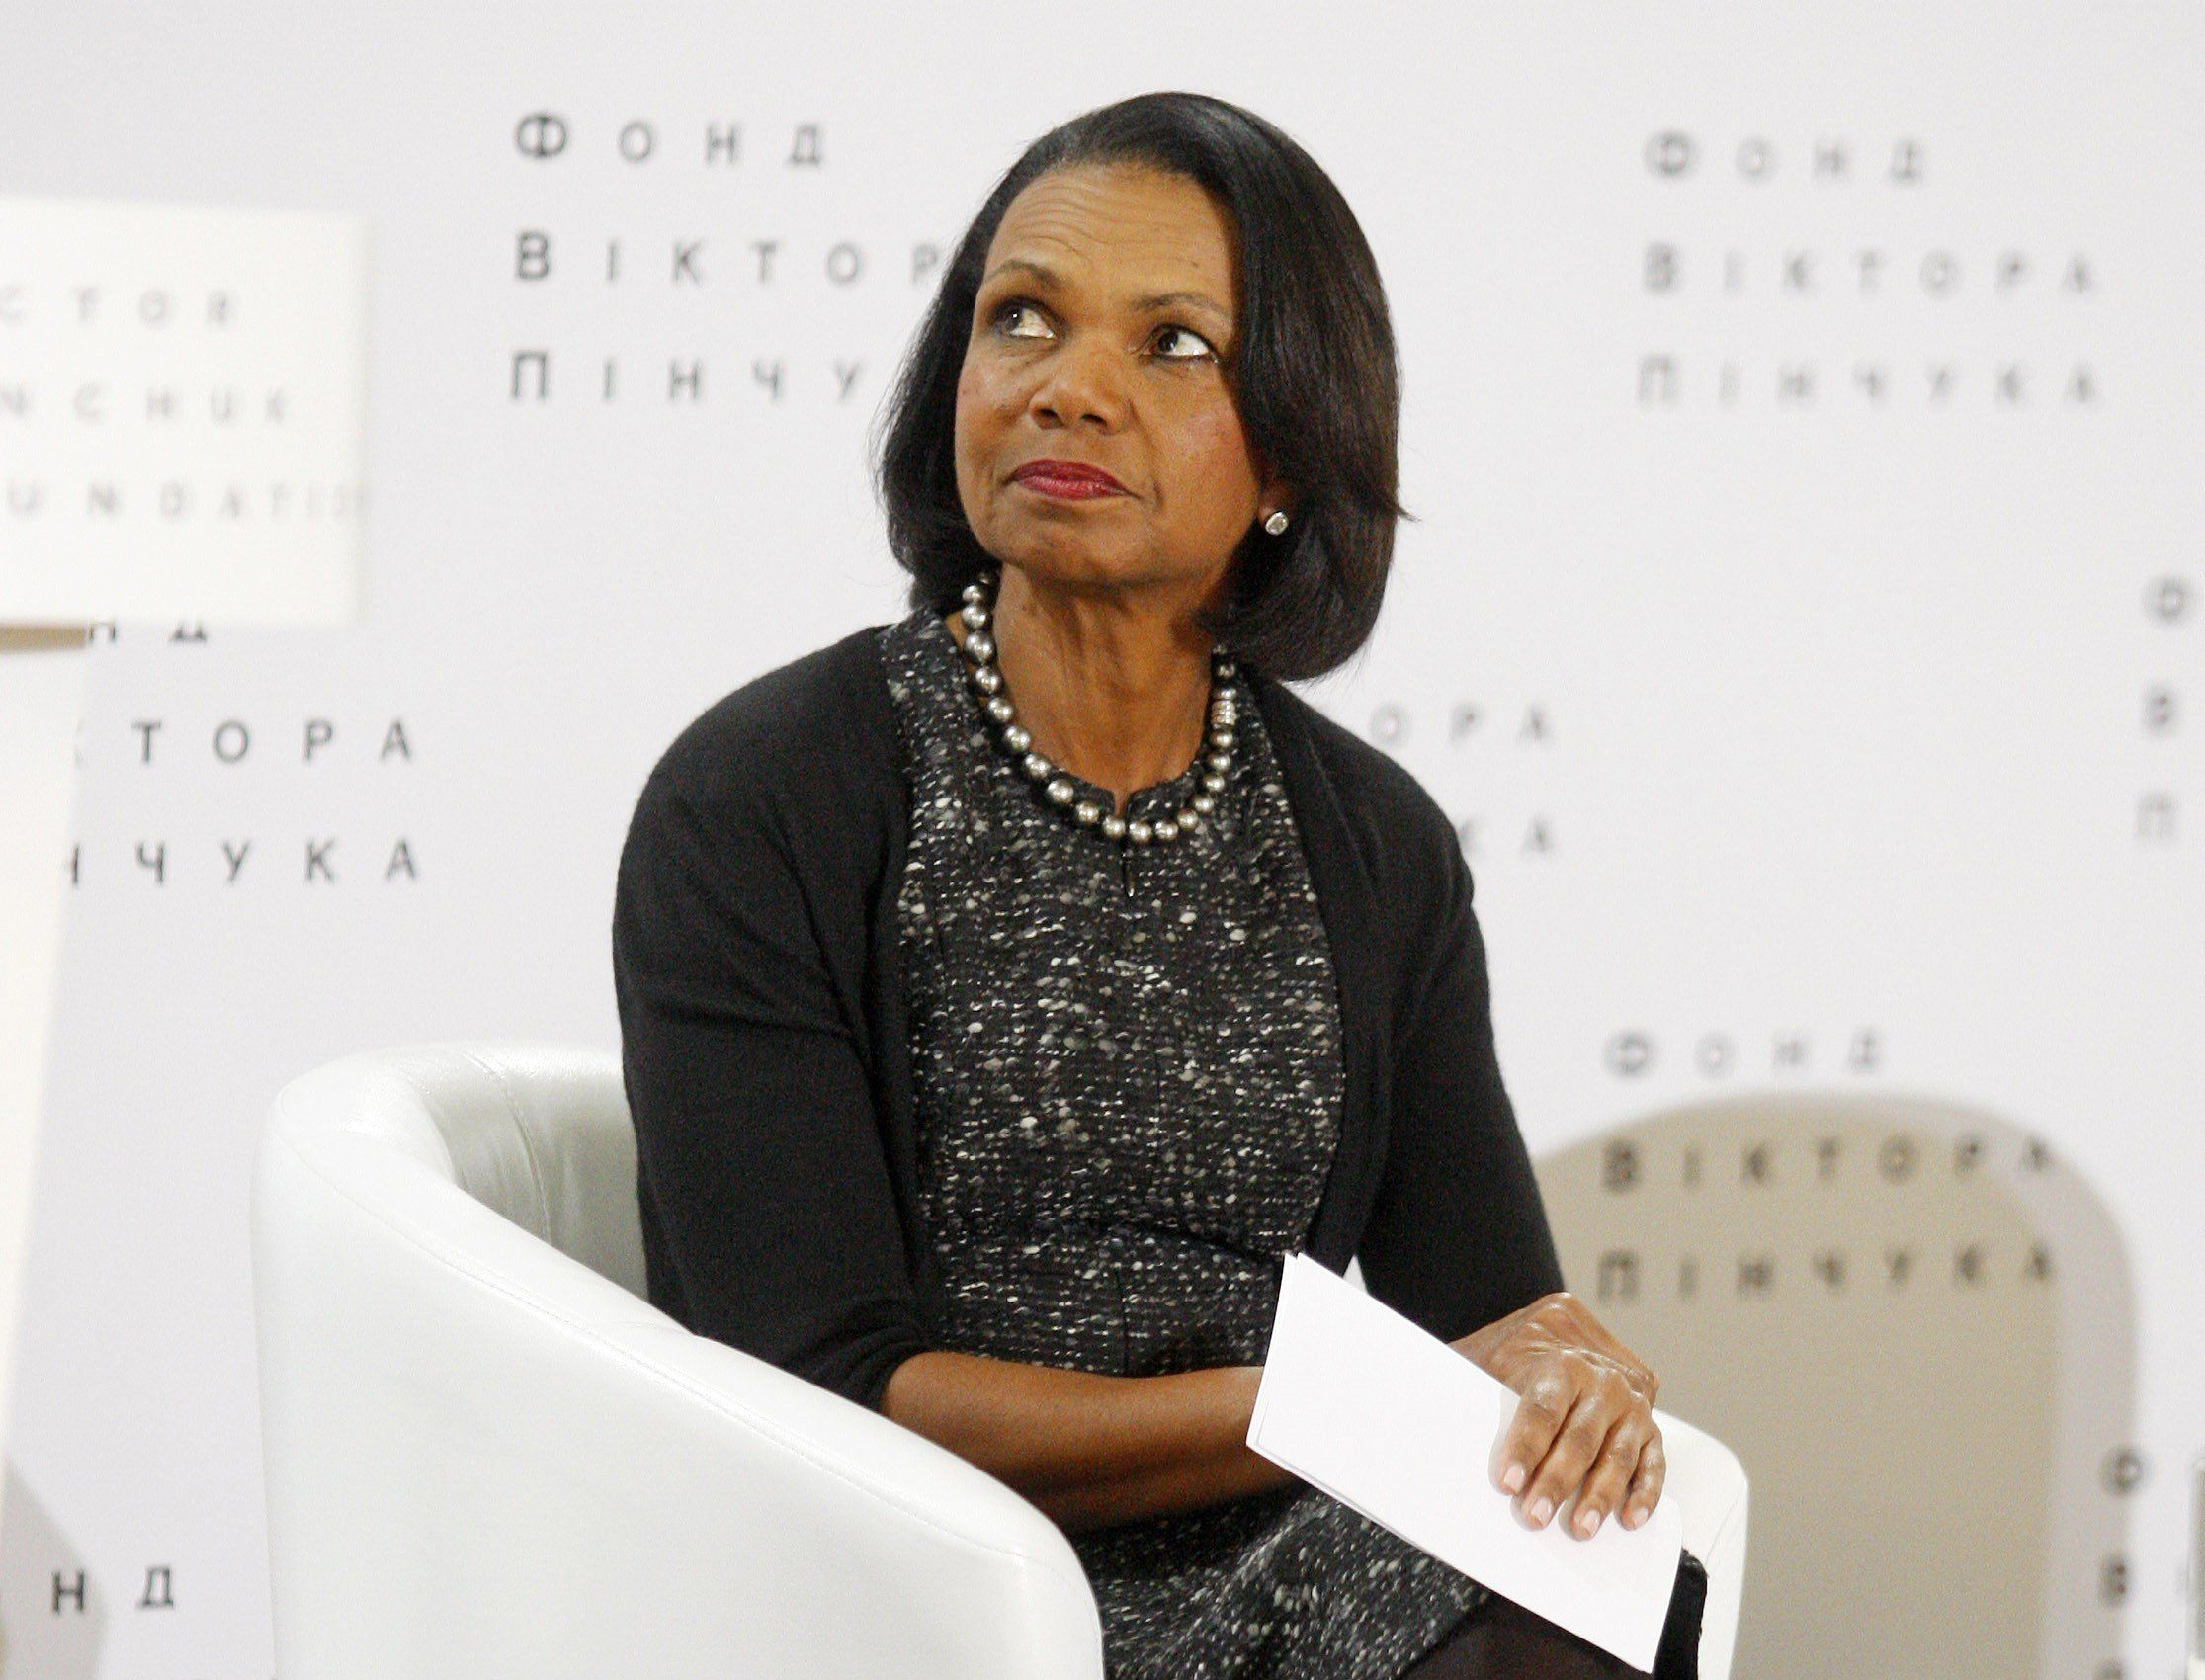 KIEV, UKRAINE - MARCH 09: Former United States secretary of state Condoleezza Rice attends her public lecture called 'The challenges of a changing world ' in Kiev,Ukraine on March 09, 2016. (Photo by Vladimir Shtanko/Anadolu Agency/Getty Images)